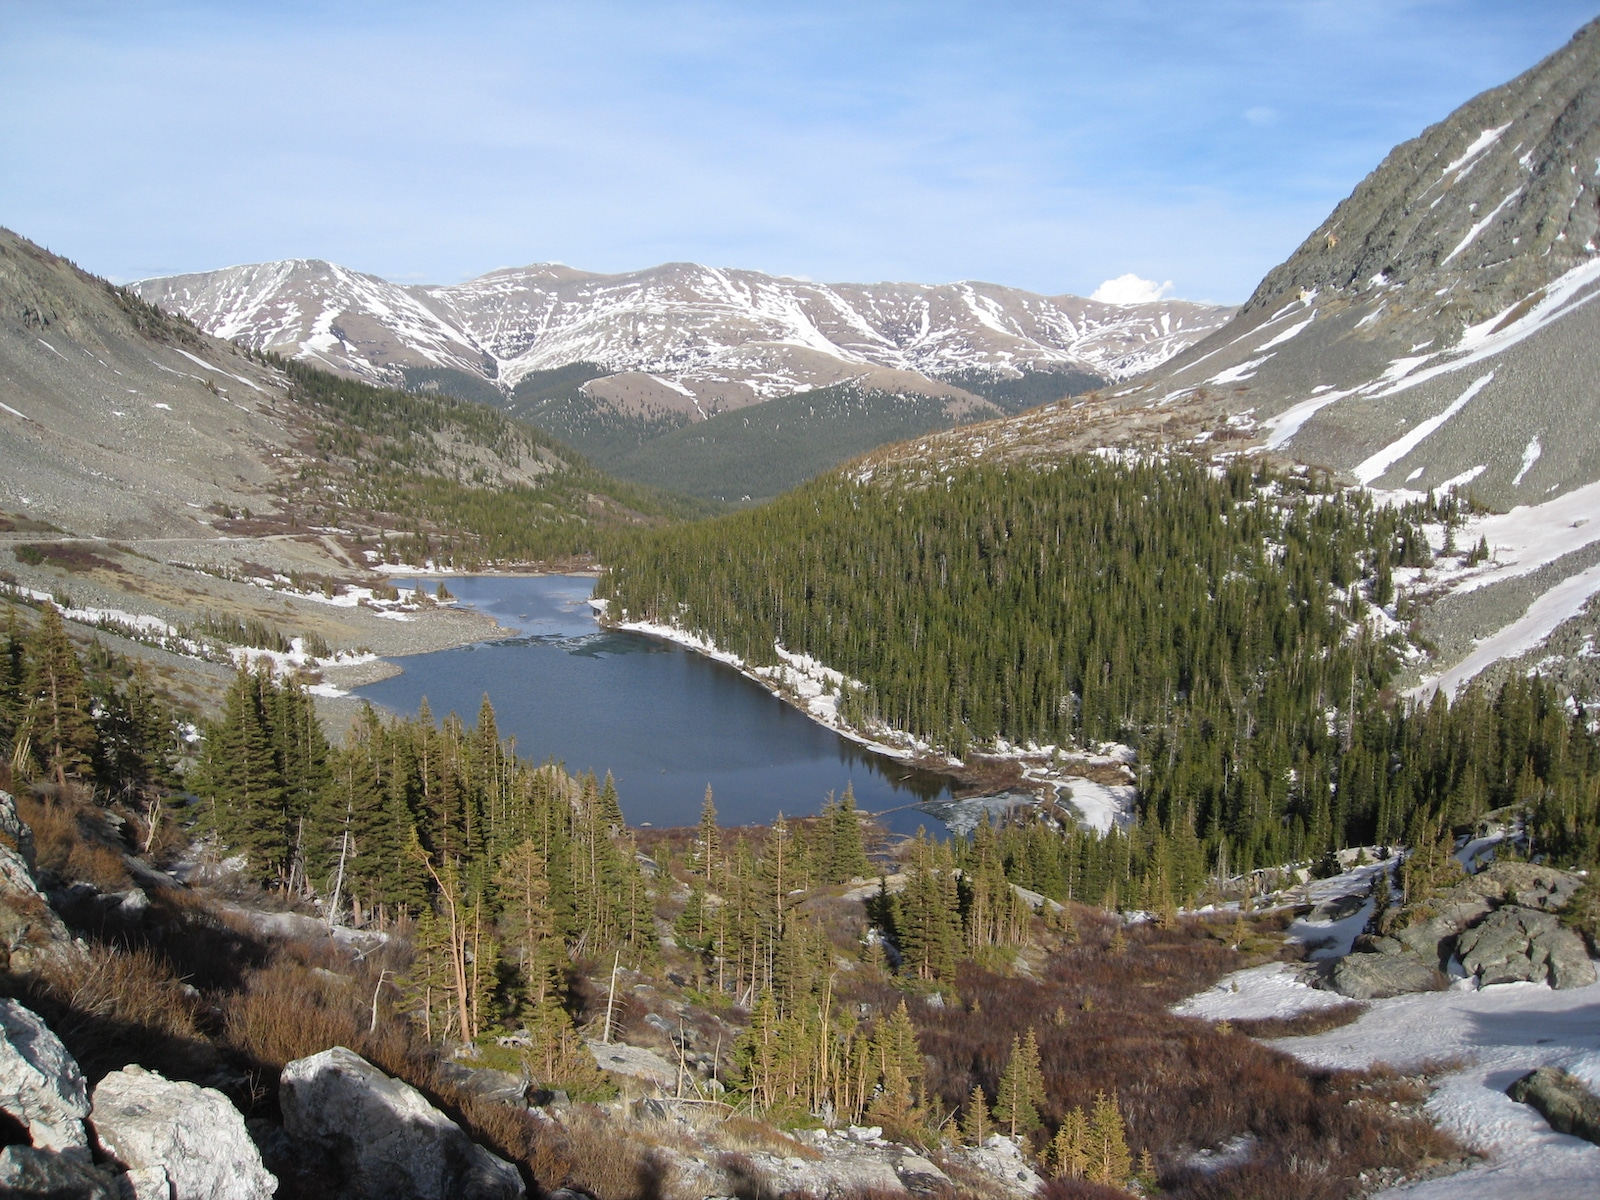 Blue Lakes view from Quandary Peak Colorado